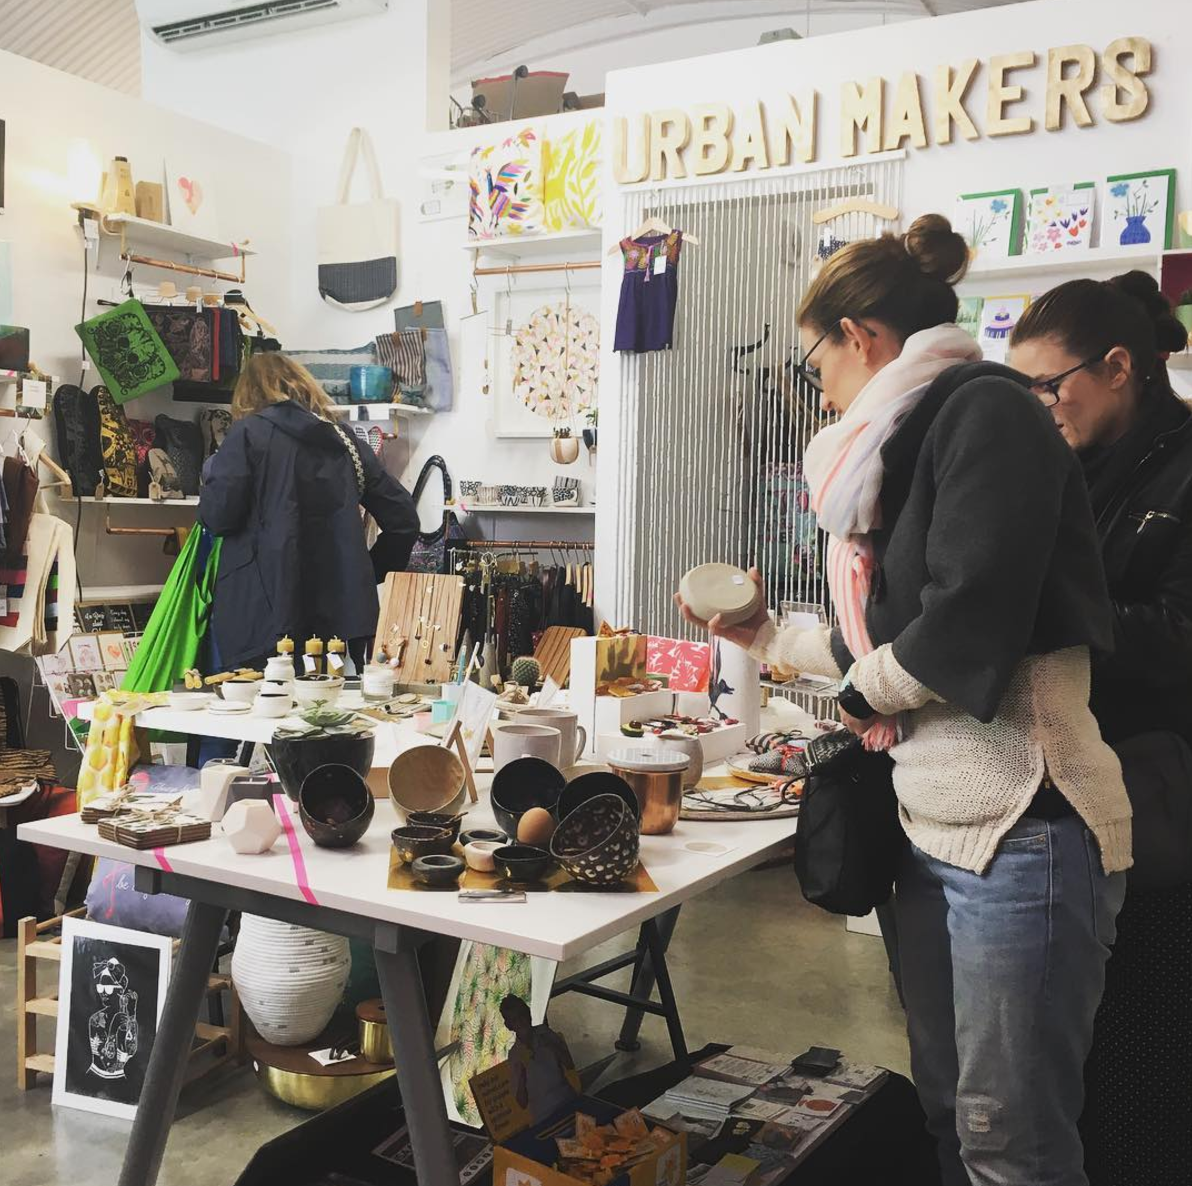 Urban Makers Pop-Up continues through the 7th of May at Fount London . Be sure to visit this fab curation of London designer - makers!